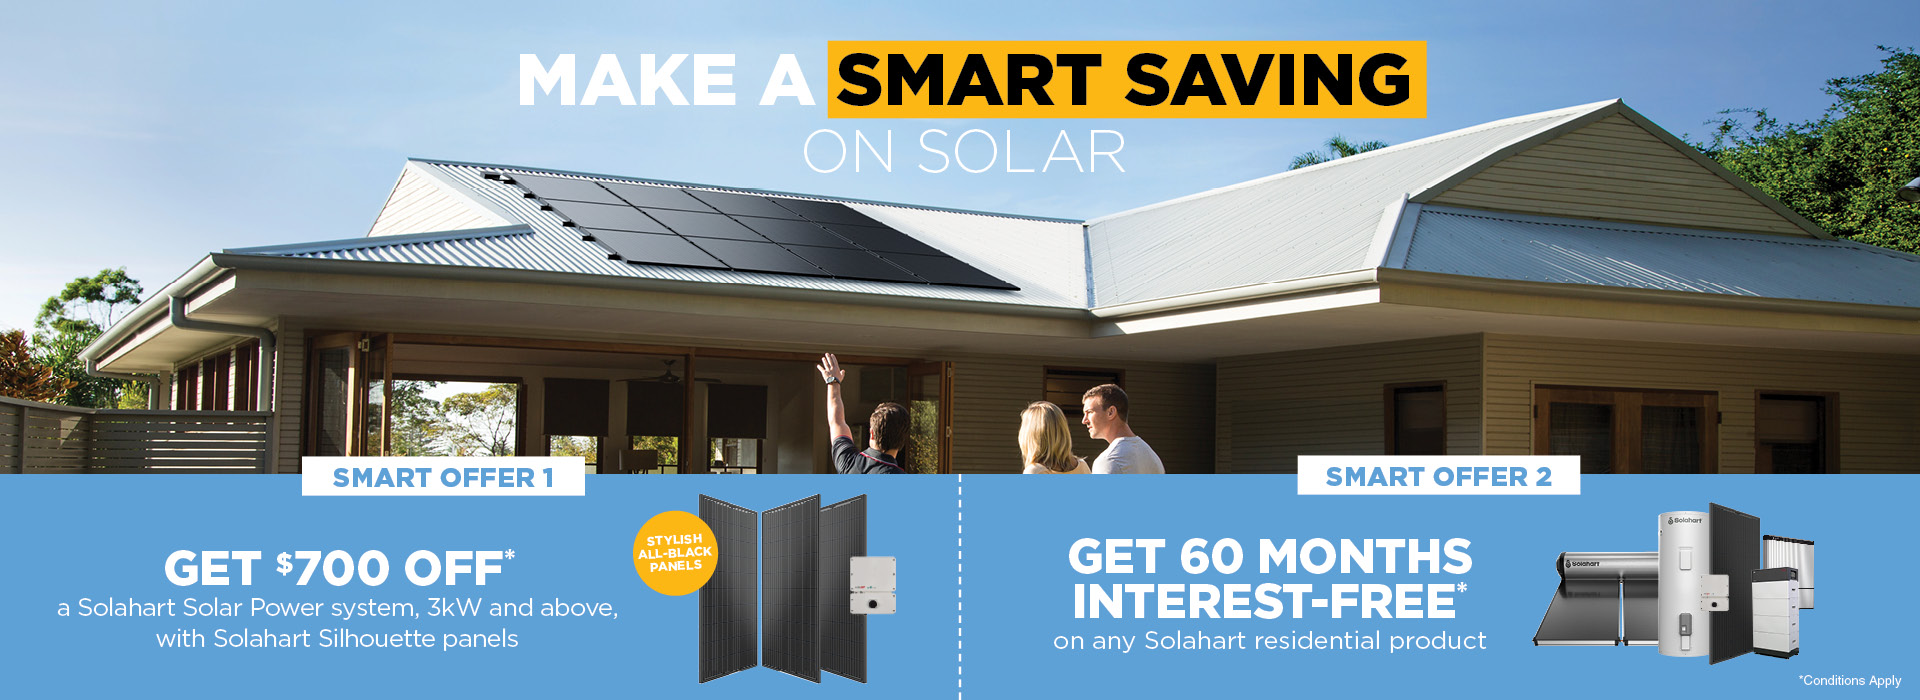 Save $700 on solar power by Solahart now when you purchase a 3kw or higher solar power system